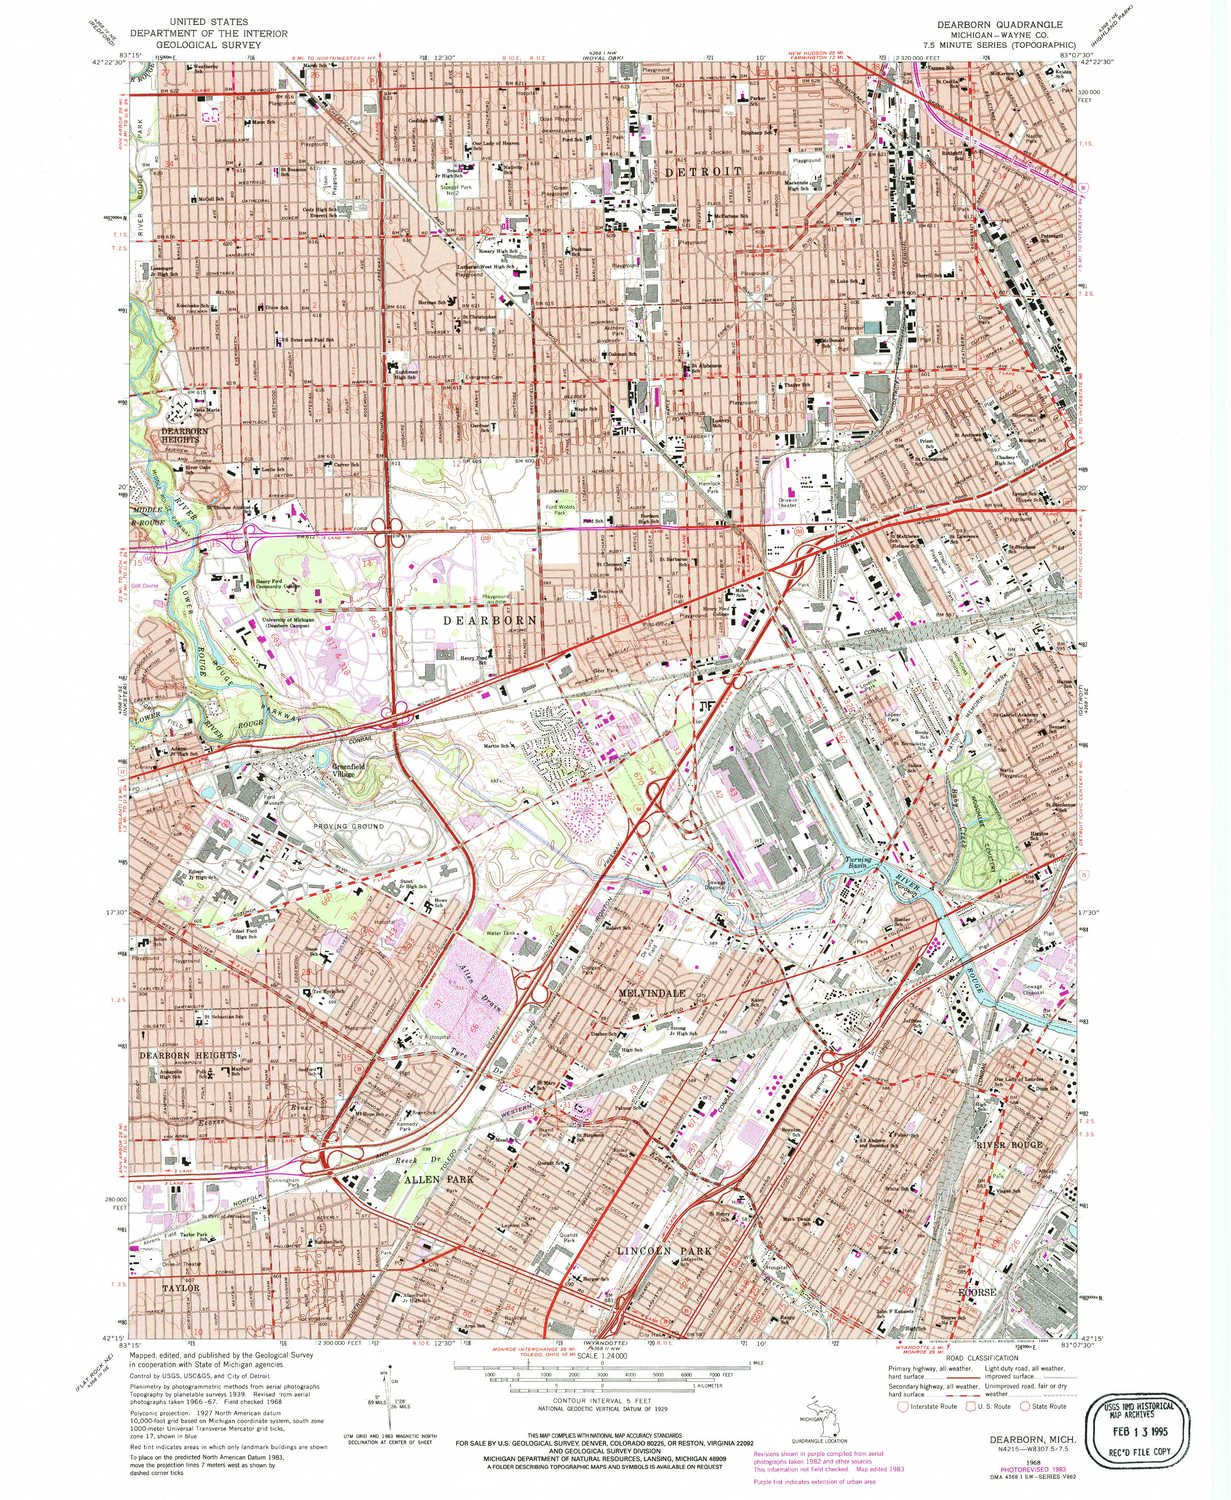 Amazon.com : YellowMaps Dearborn MI topo map, 1:24000 Scale ... on dearborn florida map, ford dearborn campus map, u of m directions, u of m students, dearborn street chicago map, dearborn mi map, u of texas austin campus map, u of m football, u of m campus, u of m ann arbor map, michigan dearborn map, u of m jokes, u of m hospital map, u of m michigan map, u of michigan hospital map, u of m minneapolis map, u of m symbol,